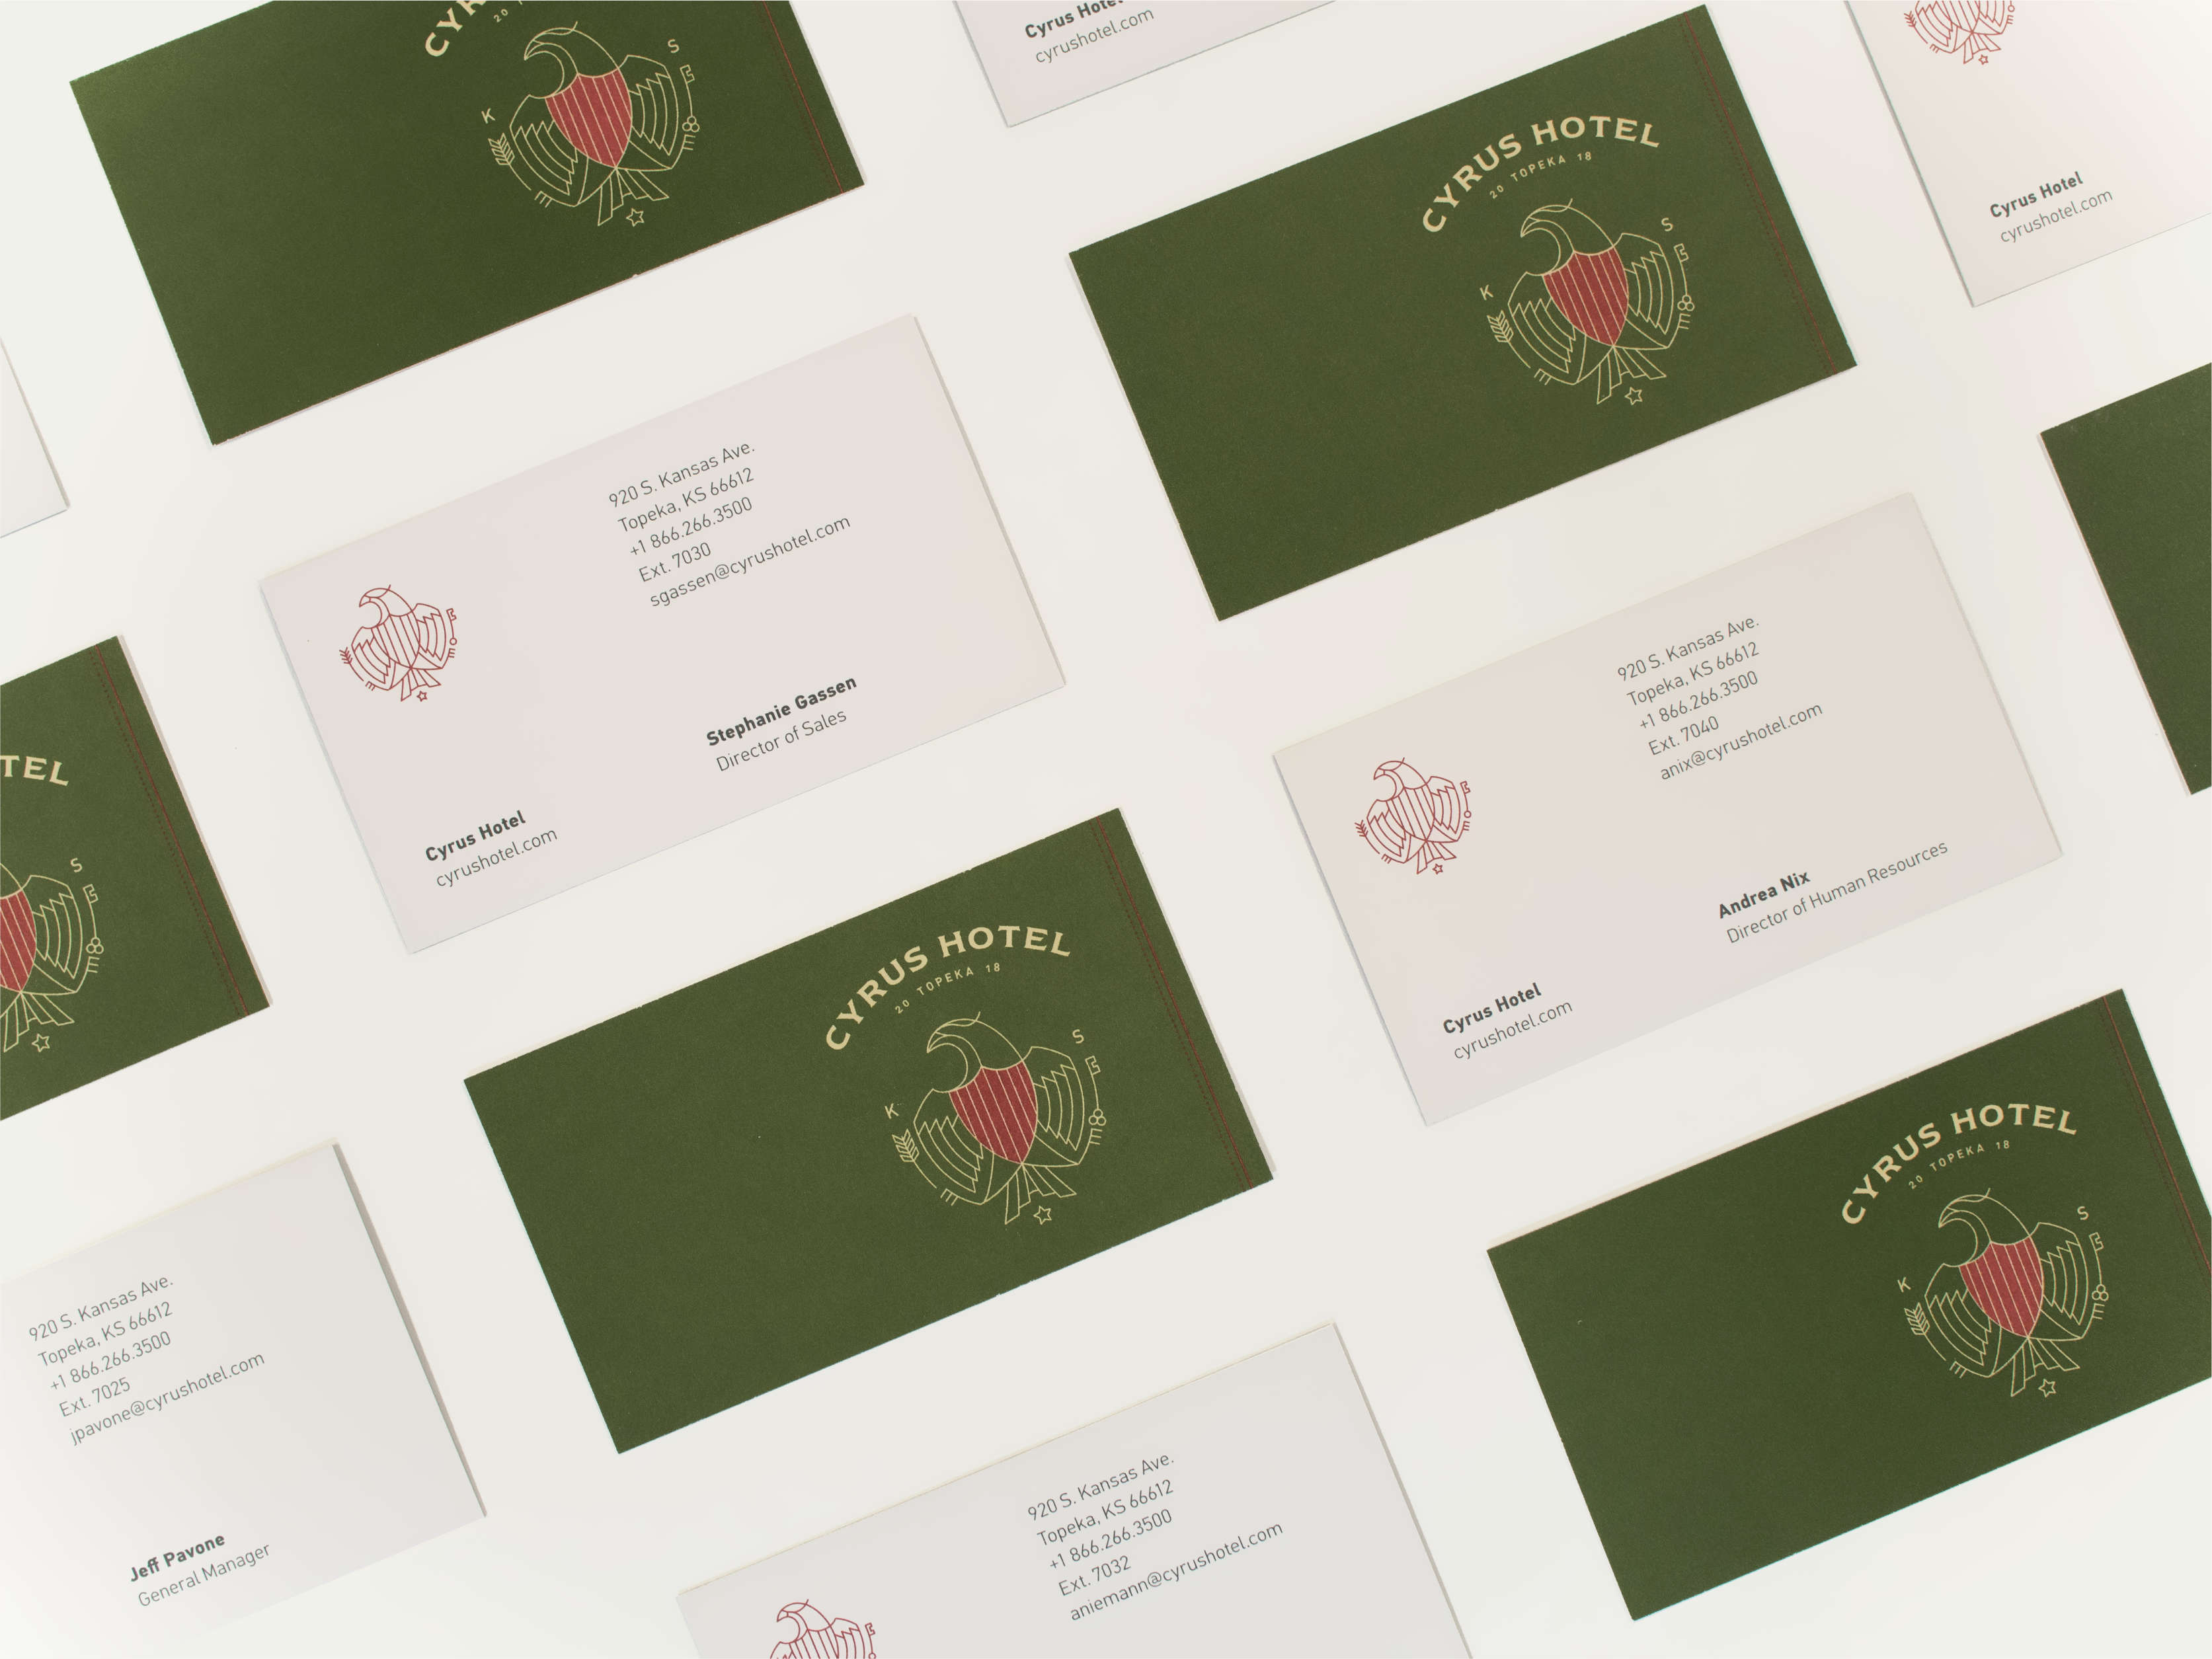 Spread of Cyrus Hotel business cards.